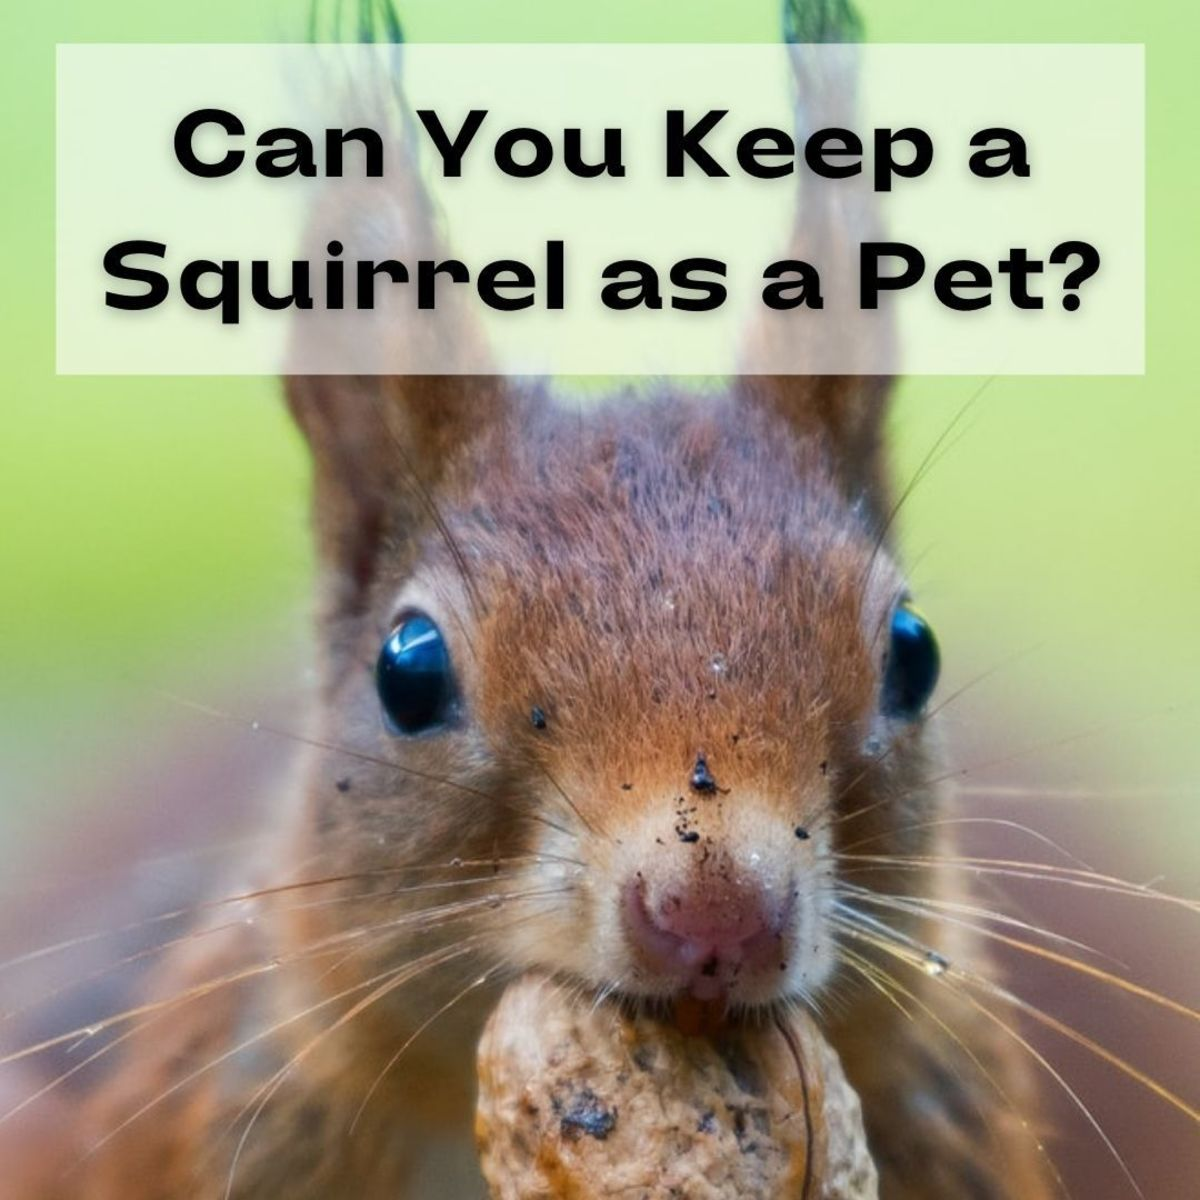 Some people might wonder if squirrels can be kept as pets, especially if they find orphaned wild squirrels that need care.